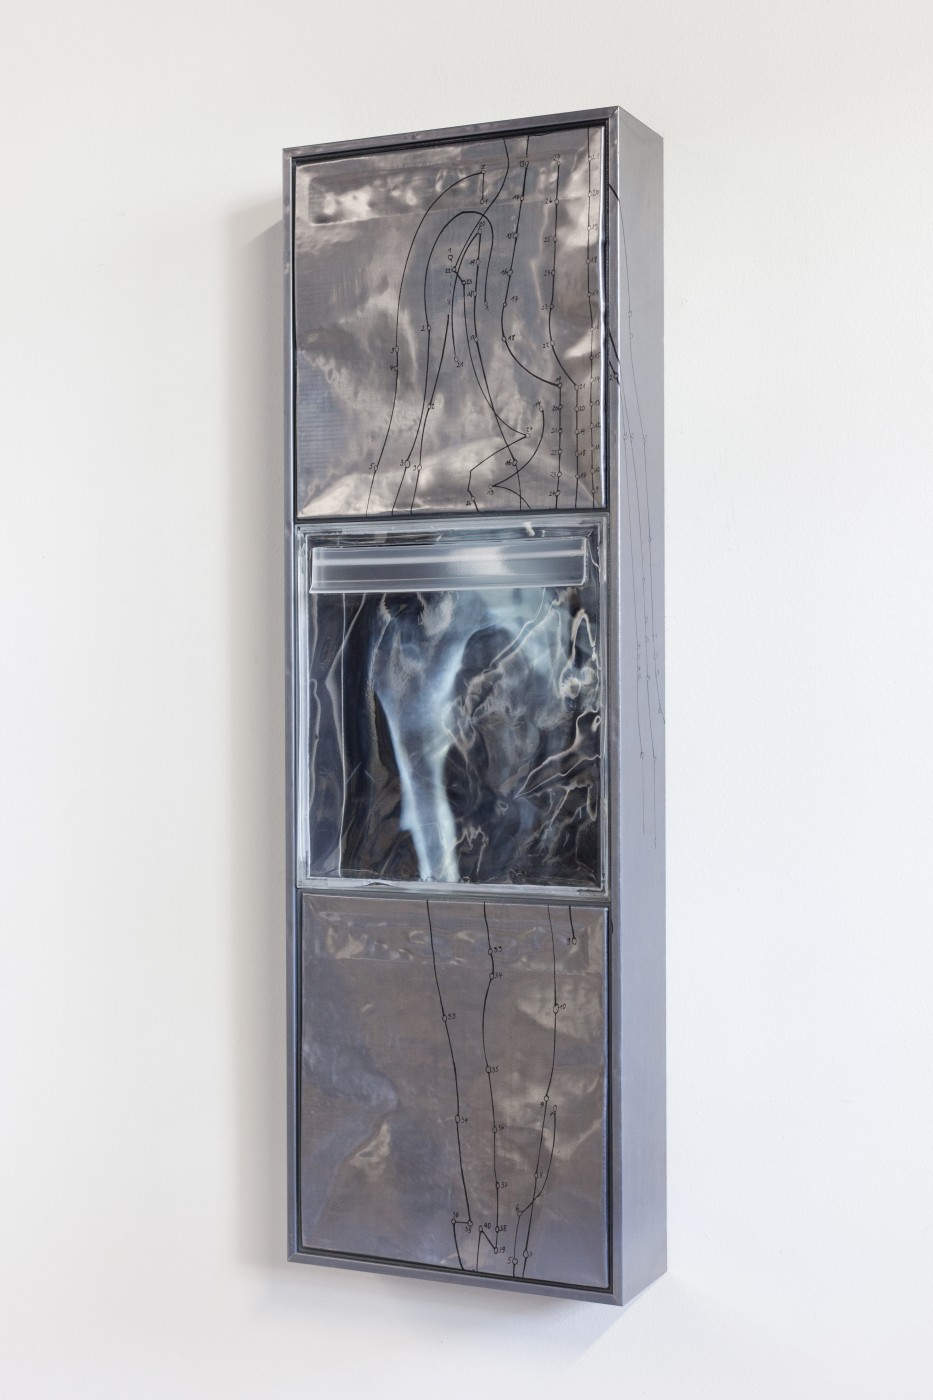 DEPOSIT  Deposits (channel ditch)</I>, 2015 Silkscreen on lead, inkjet print on acetate, UV resistant epoxy resin, aluminium panel 40 x 122 x 14 cm / 15.7 x 48 x 5.5 in